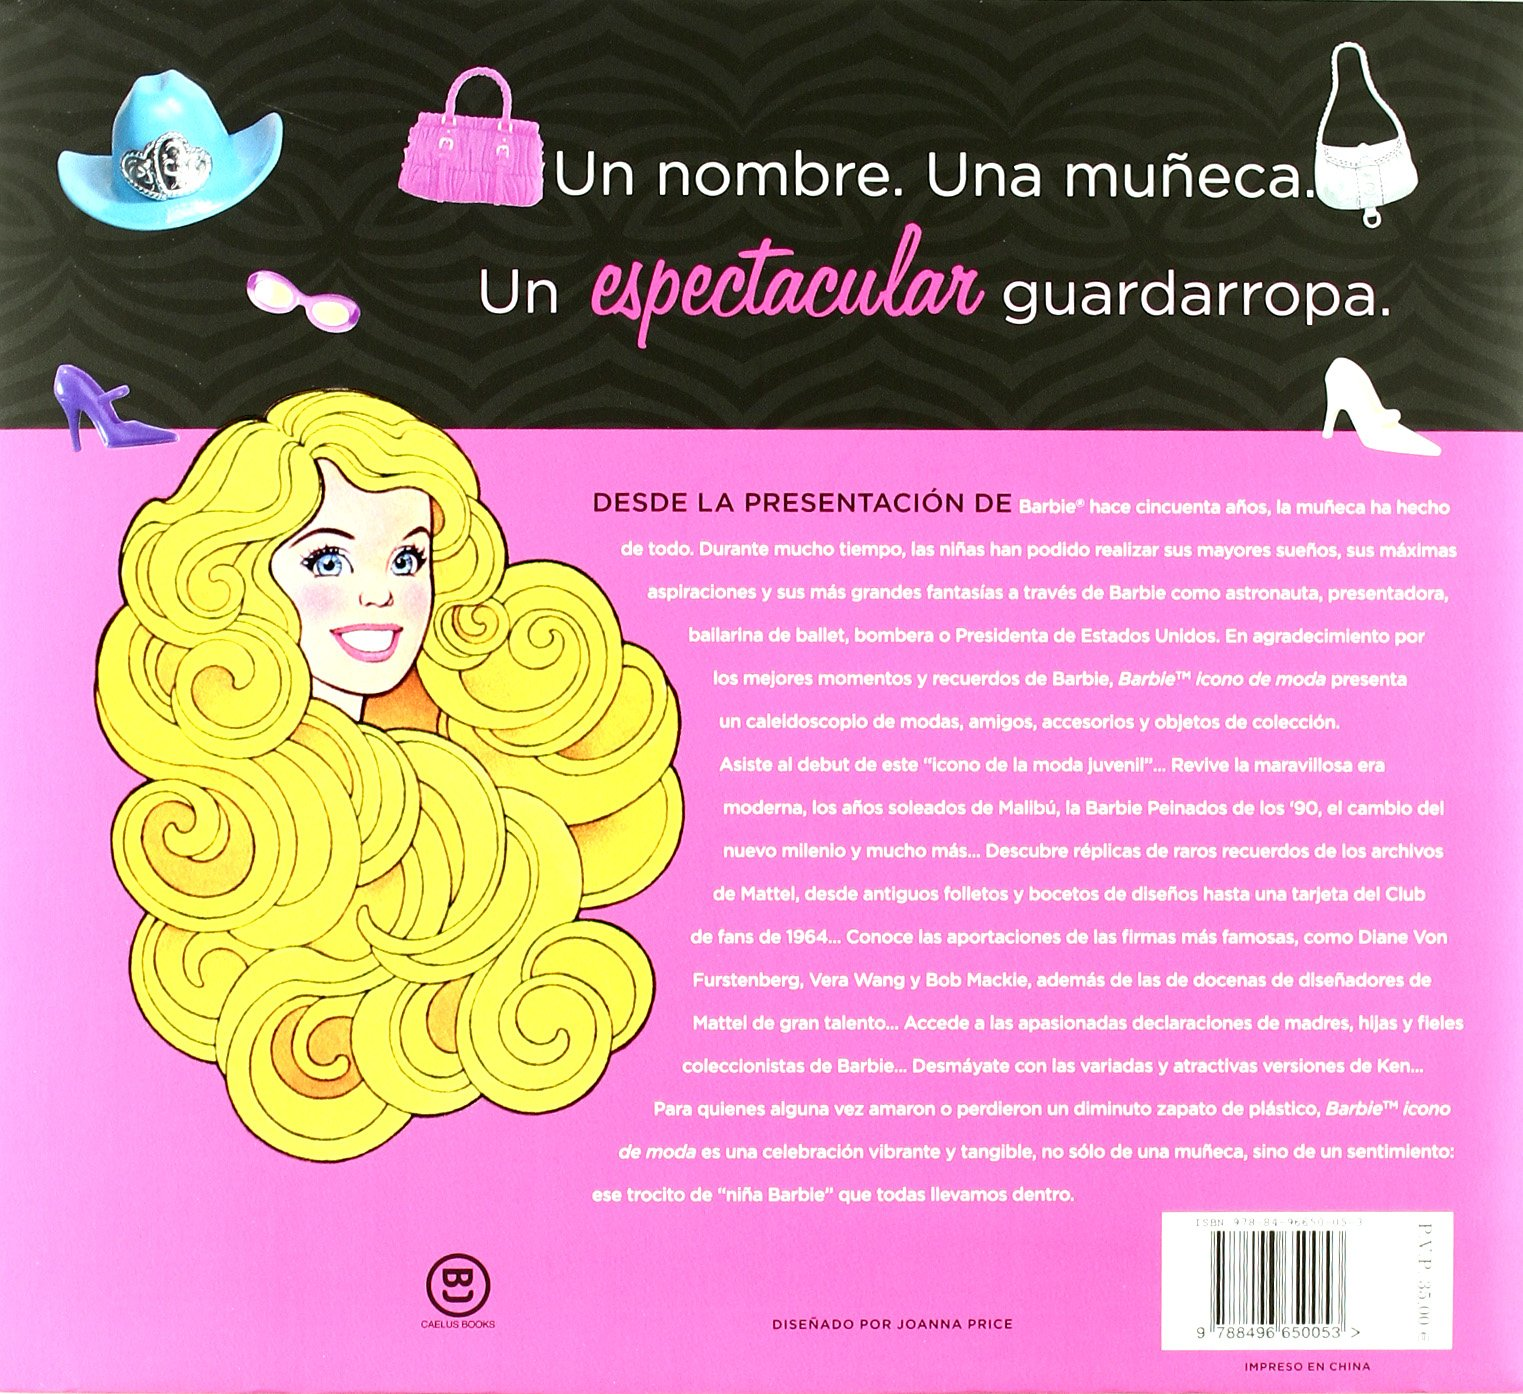 Barbie, icono de moda (Spanish Edition): Jennie Damato: 9788496650053: Amazon.com: Books